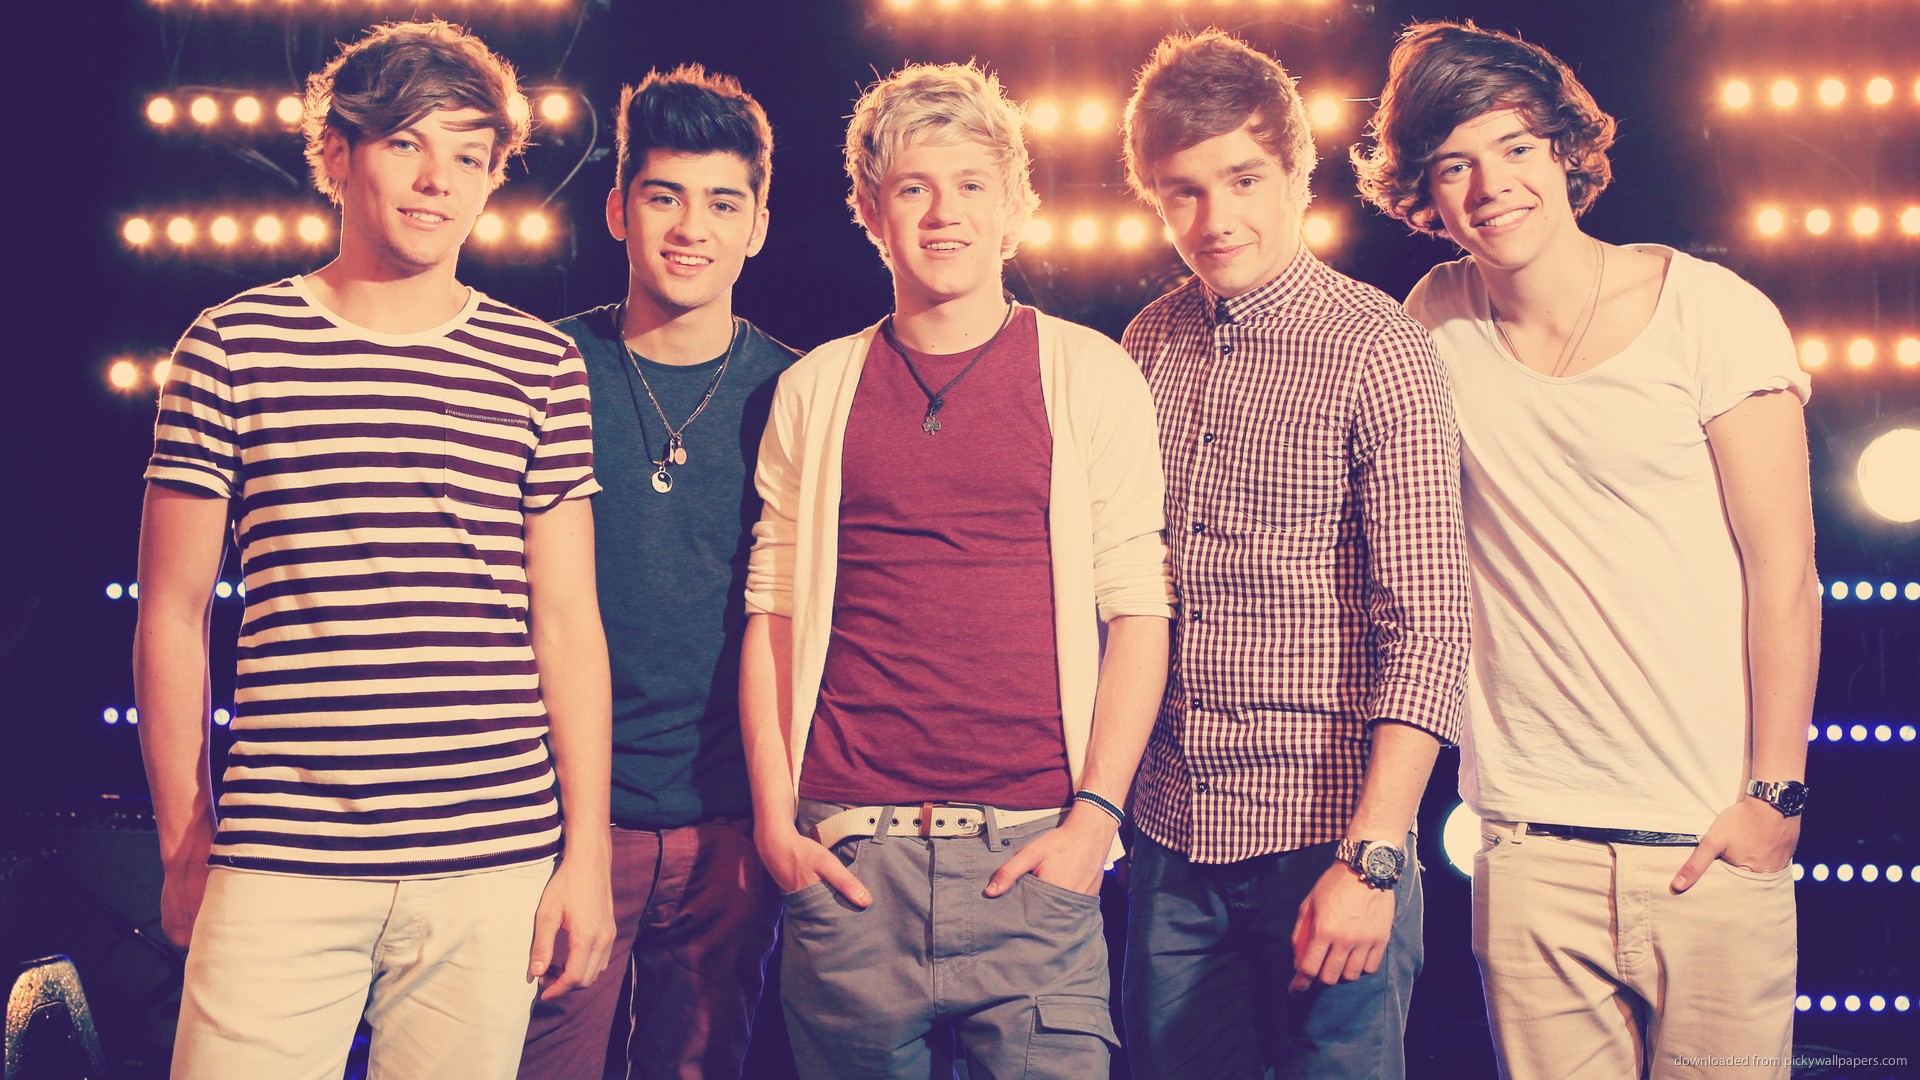 One Direction HD   Wallpaper High Definition High Quality 1920x1080